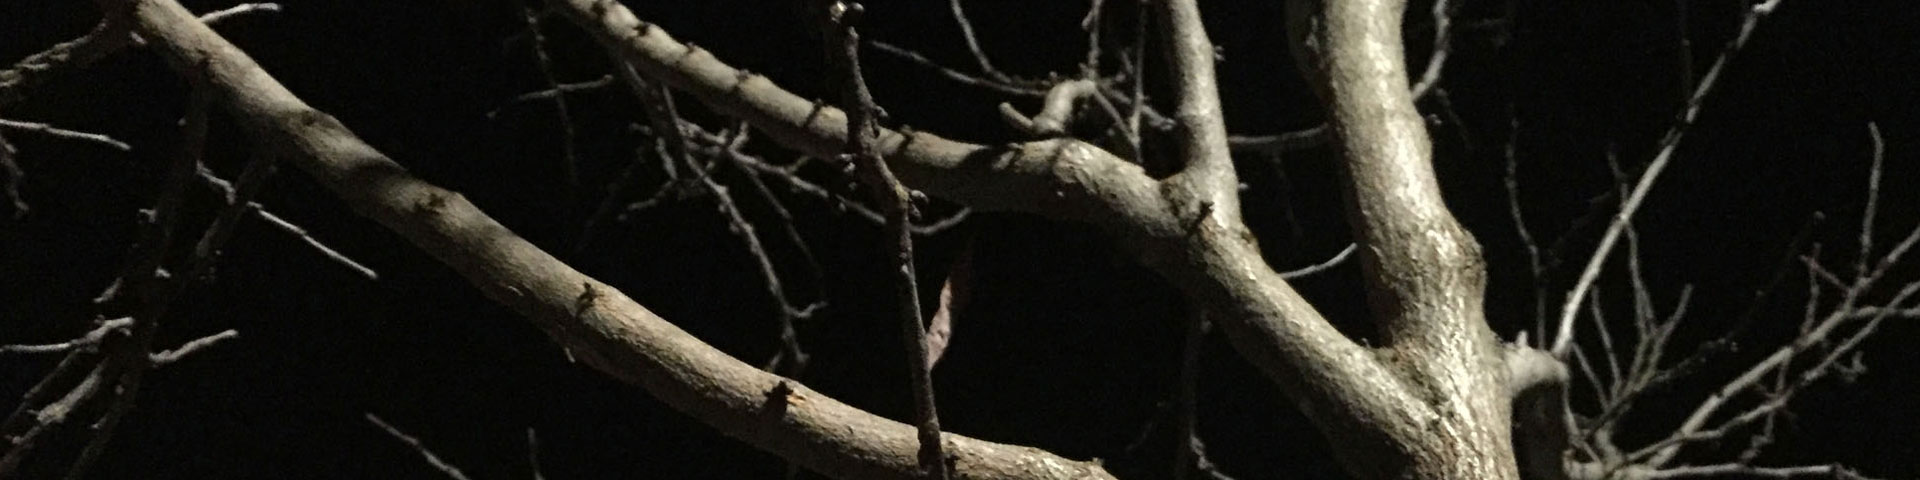 Pale white/grey tree branches stretch against the darkness.